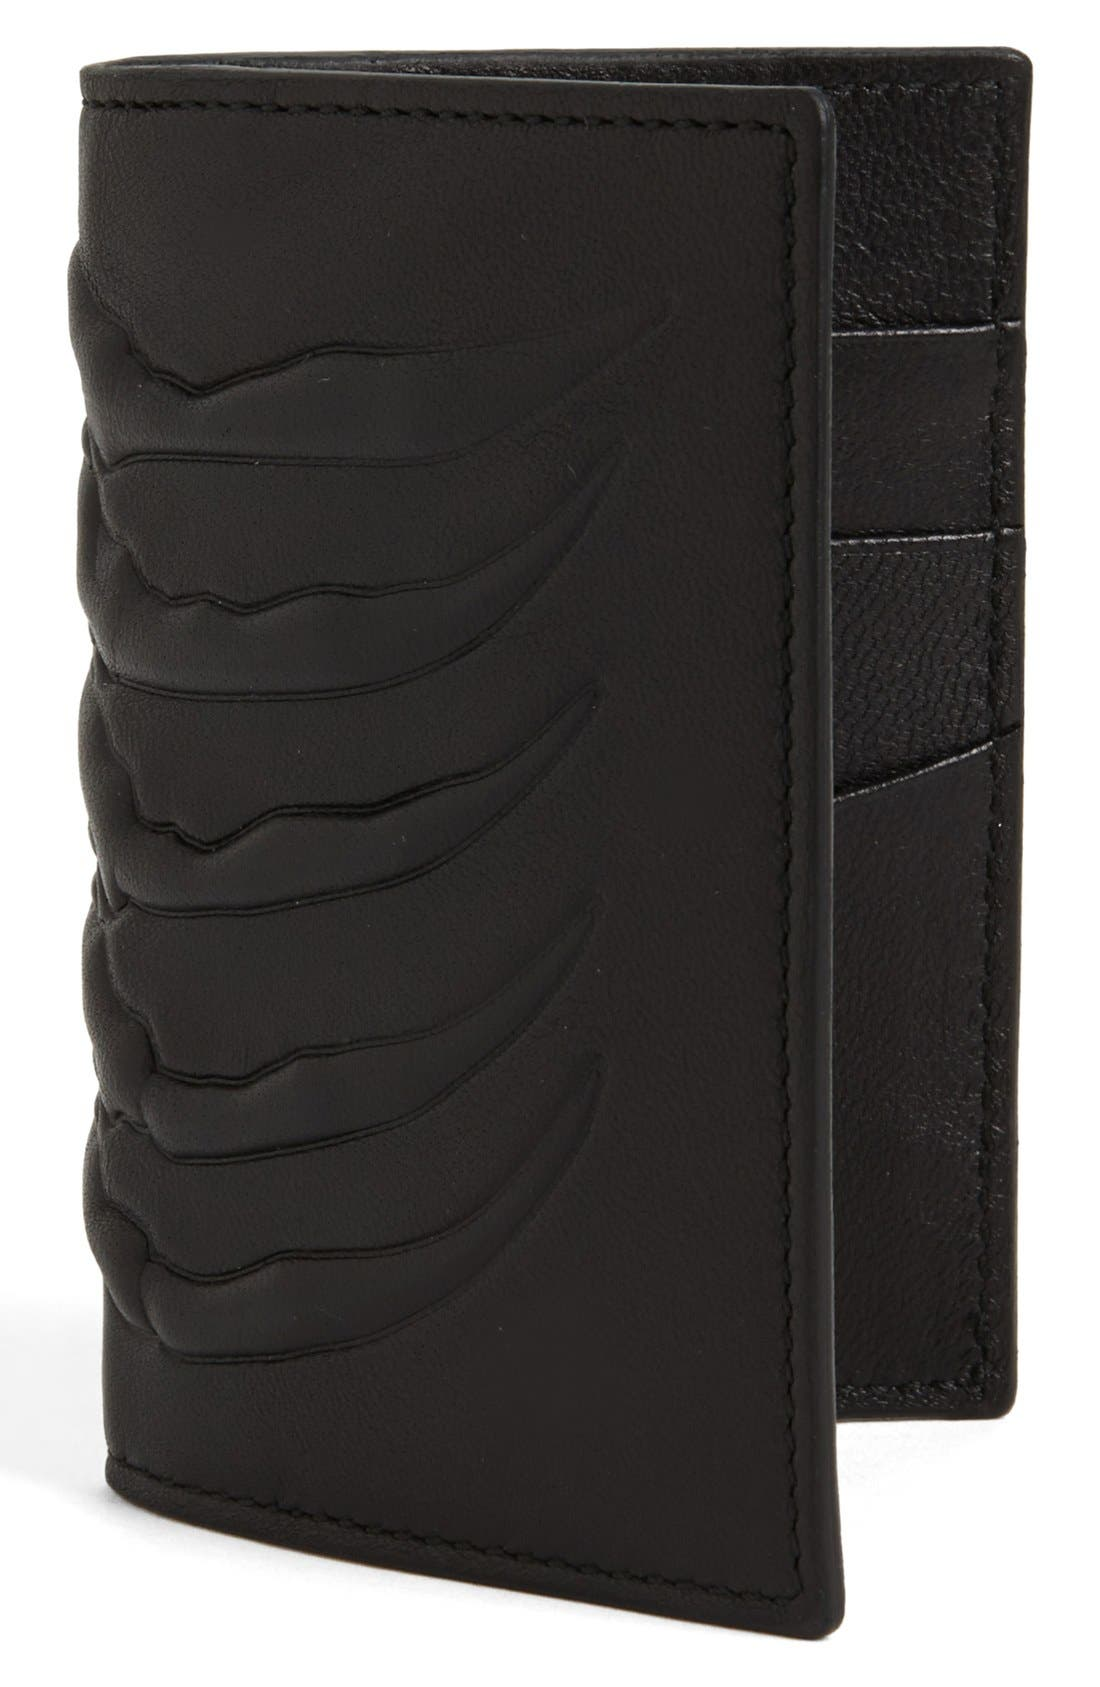 Main Image - Alexander McQueen Rib Cage Leather Card Holder